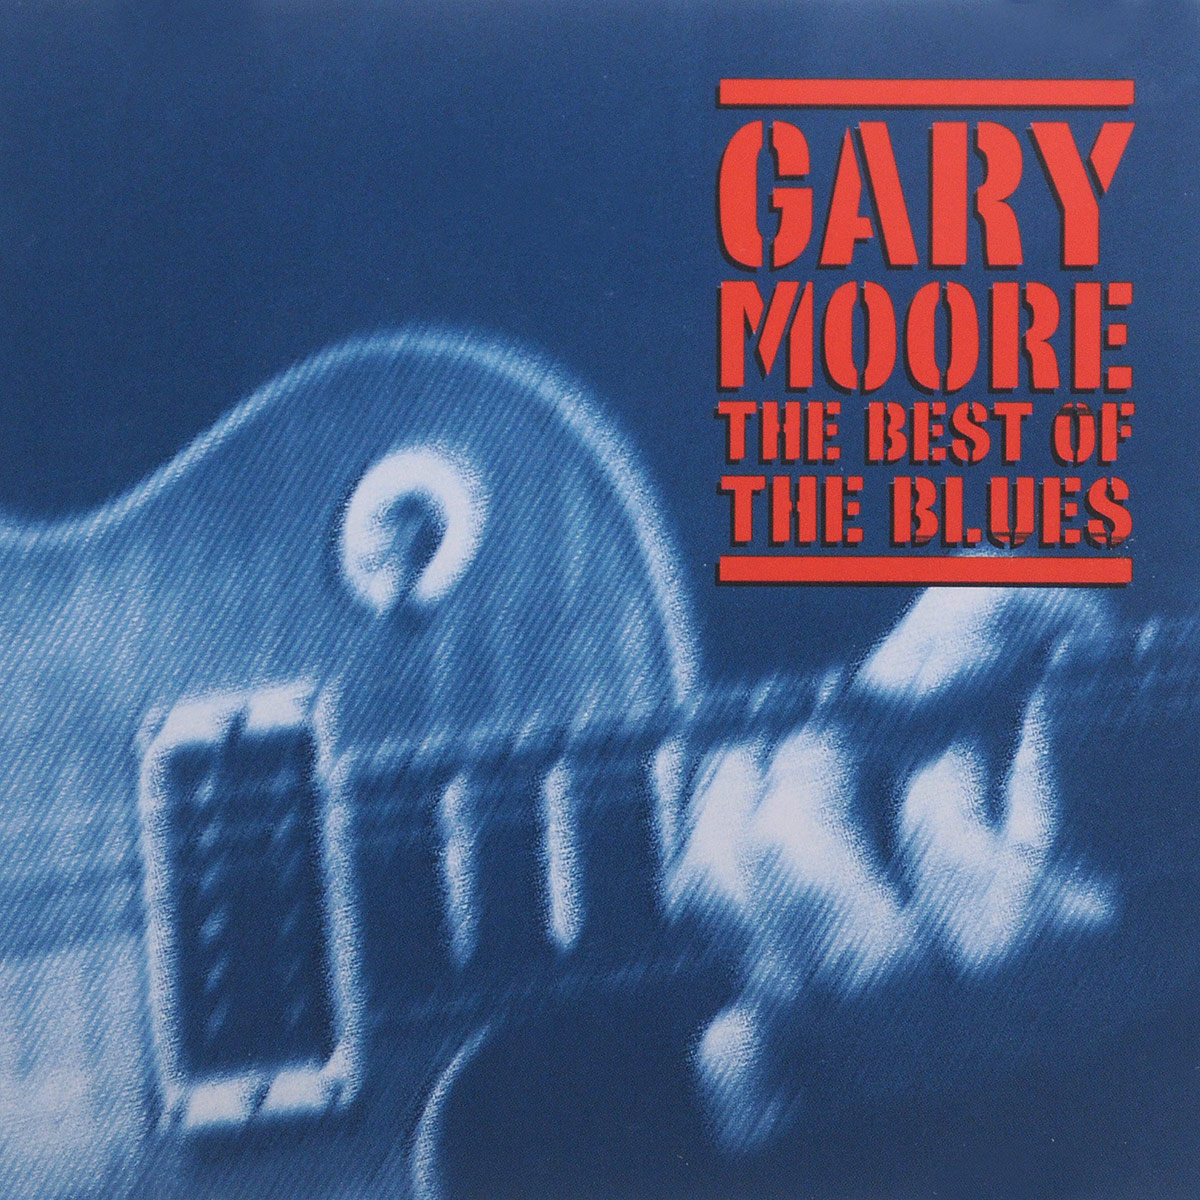 Гэри Мур Gary Moore. The Best Of The Blues (2 CD) гэри мур the midnight blues band gary moore